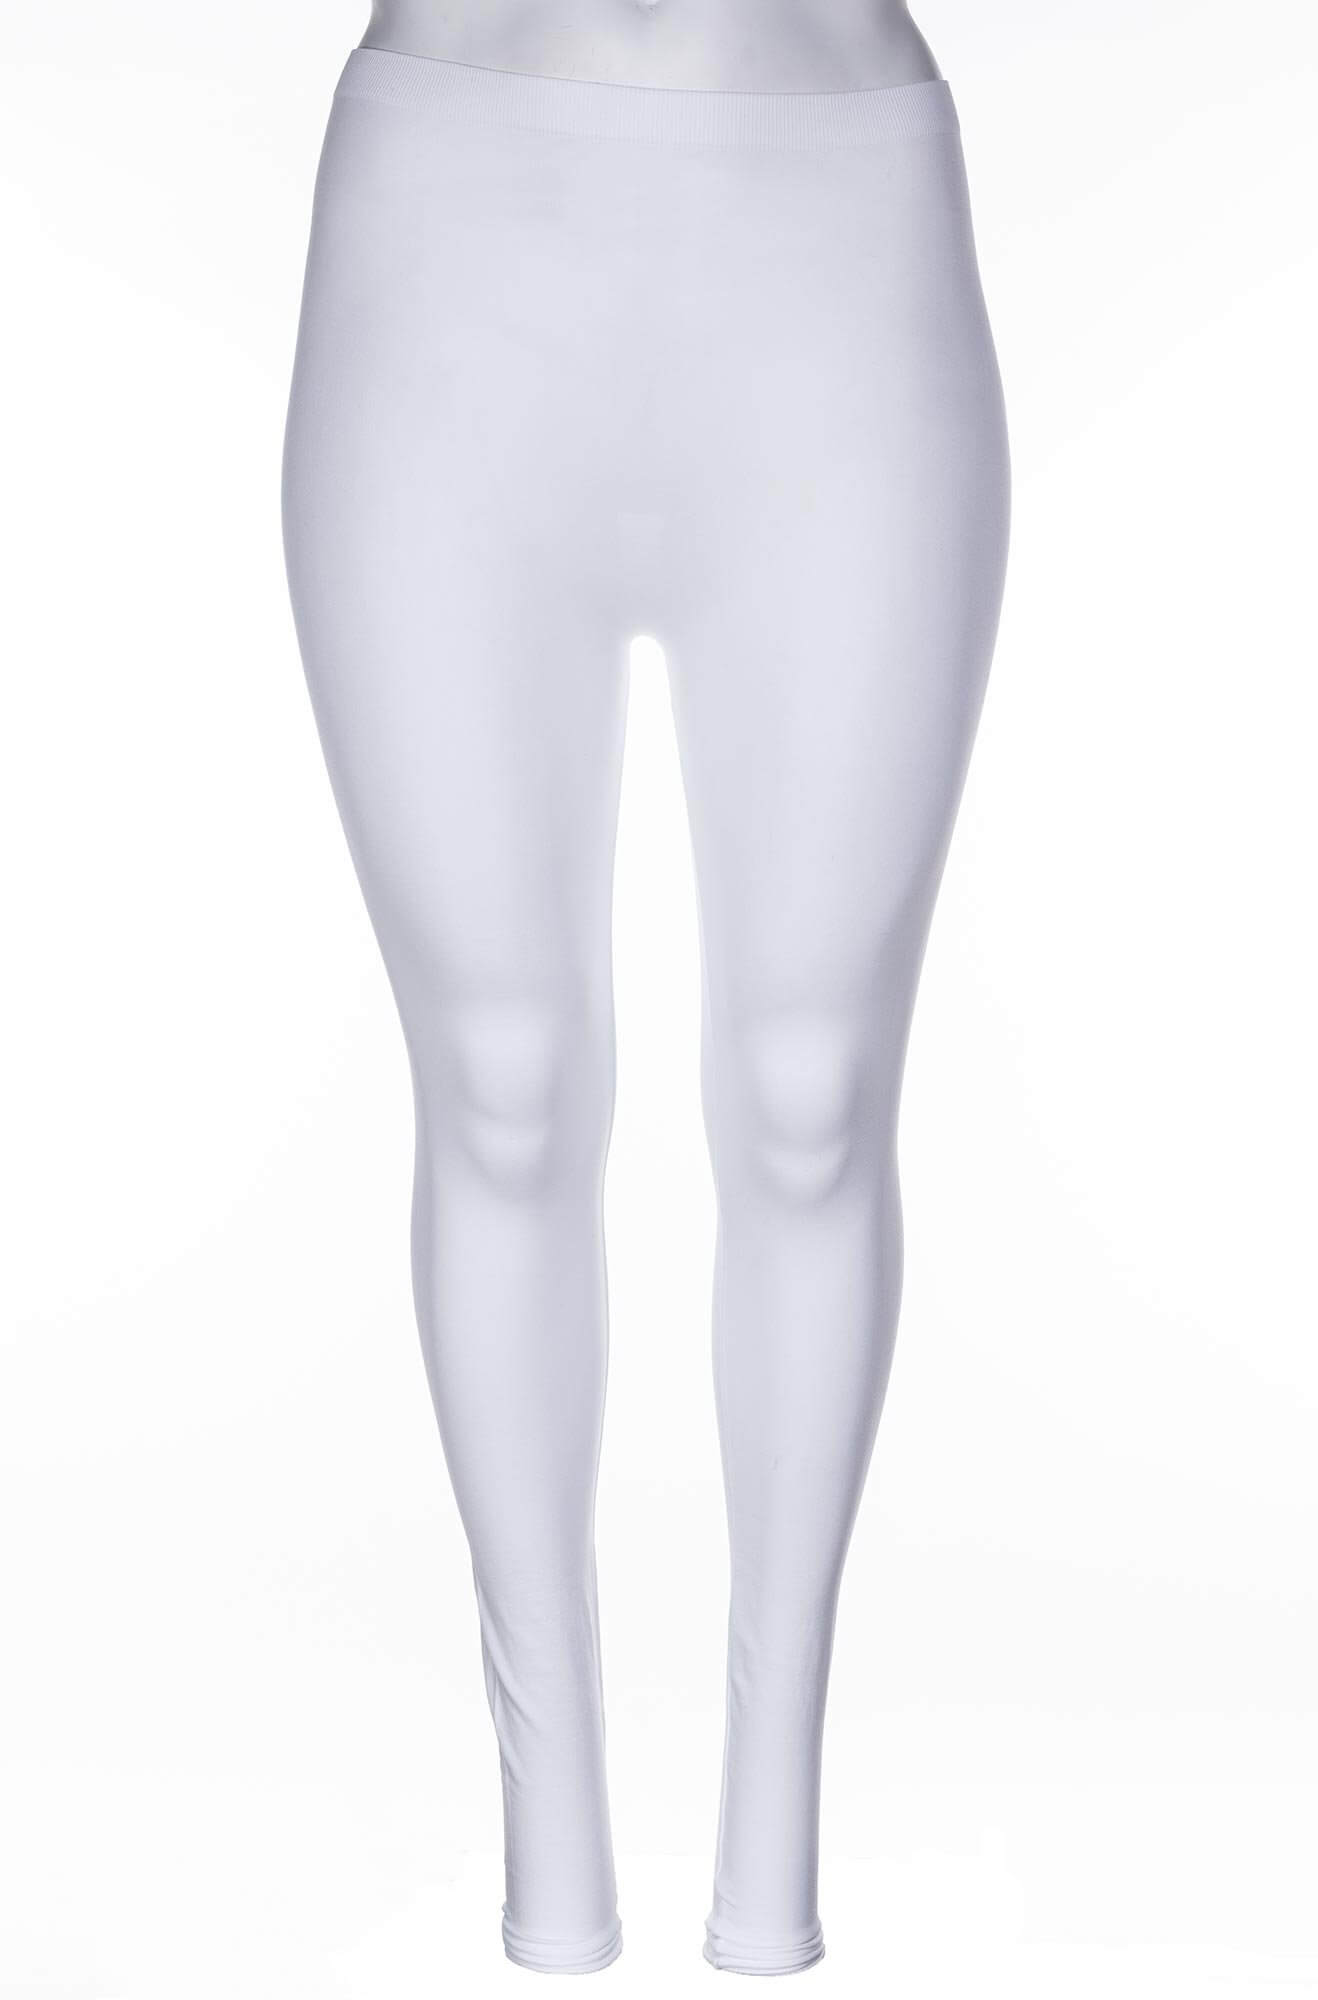 Hvide microfiber leggings